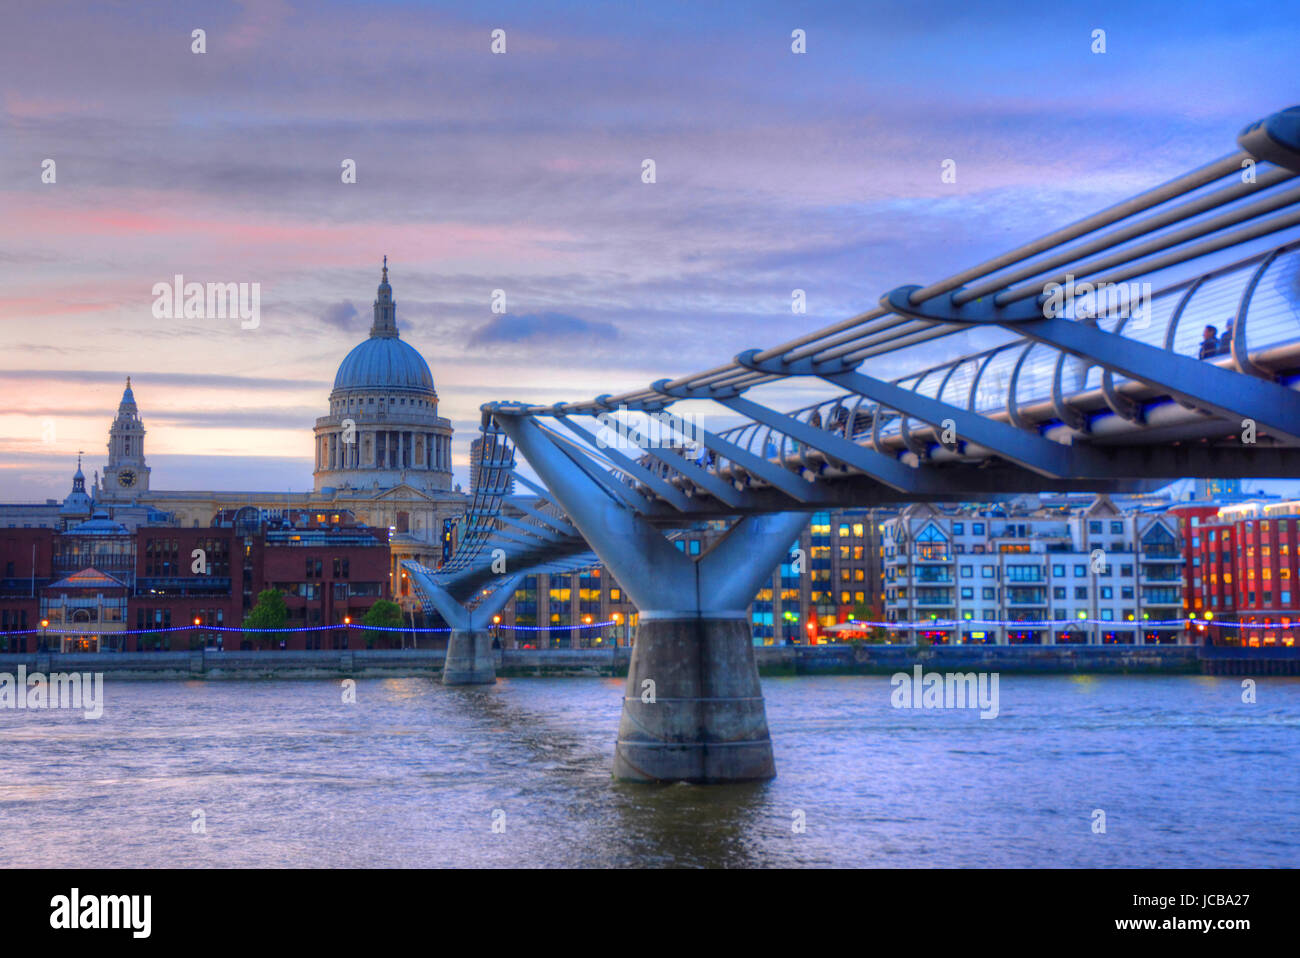 St. Paul's Cathedral from Millennium Footbridge in London, UK - Stock Image